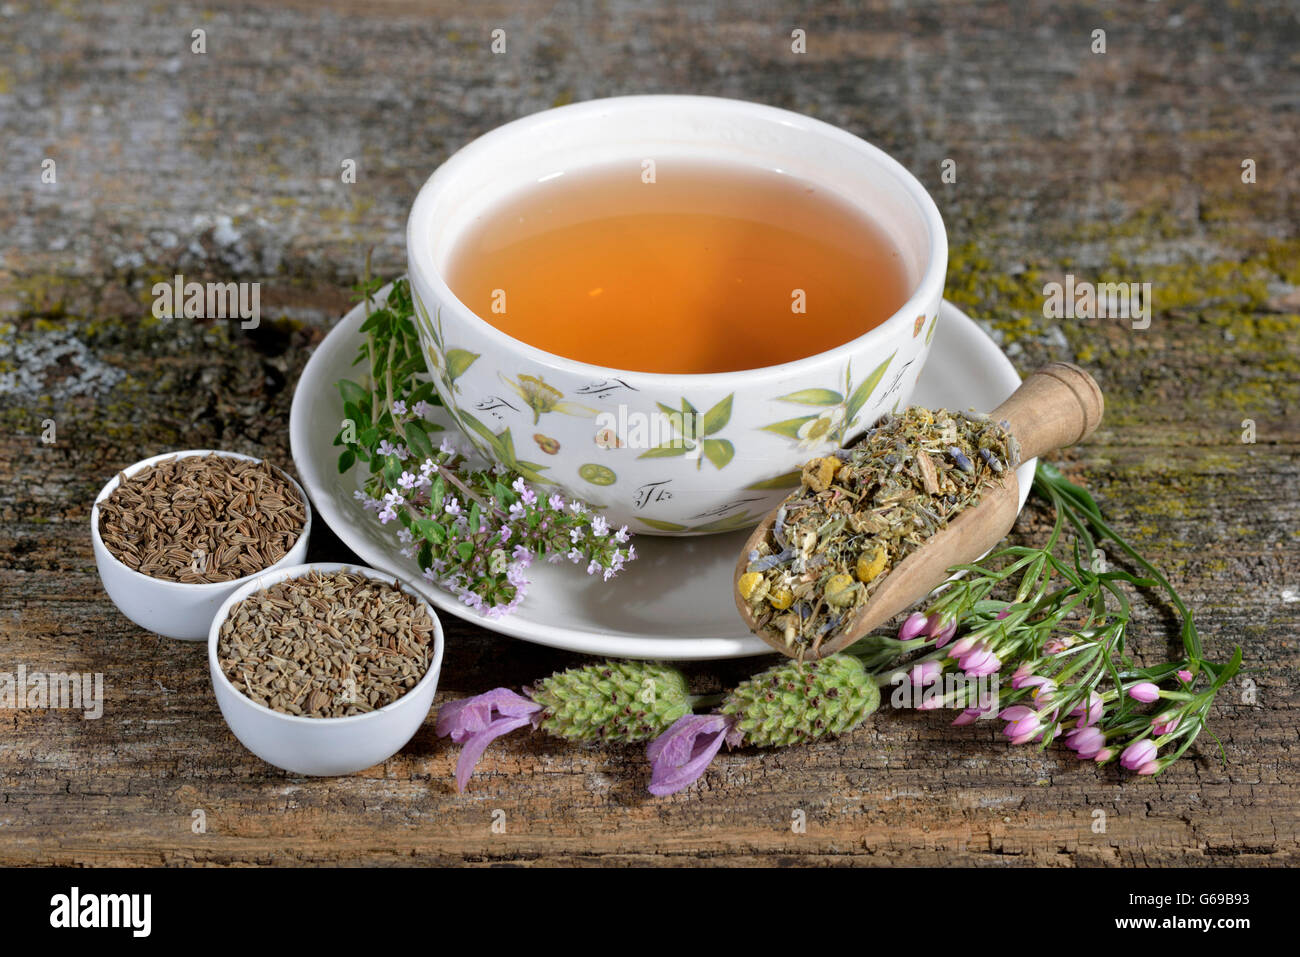 Stomach tea, anise, blessed thistle, common centaury